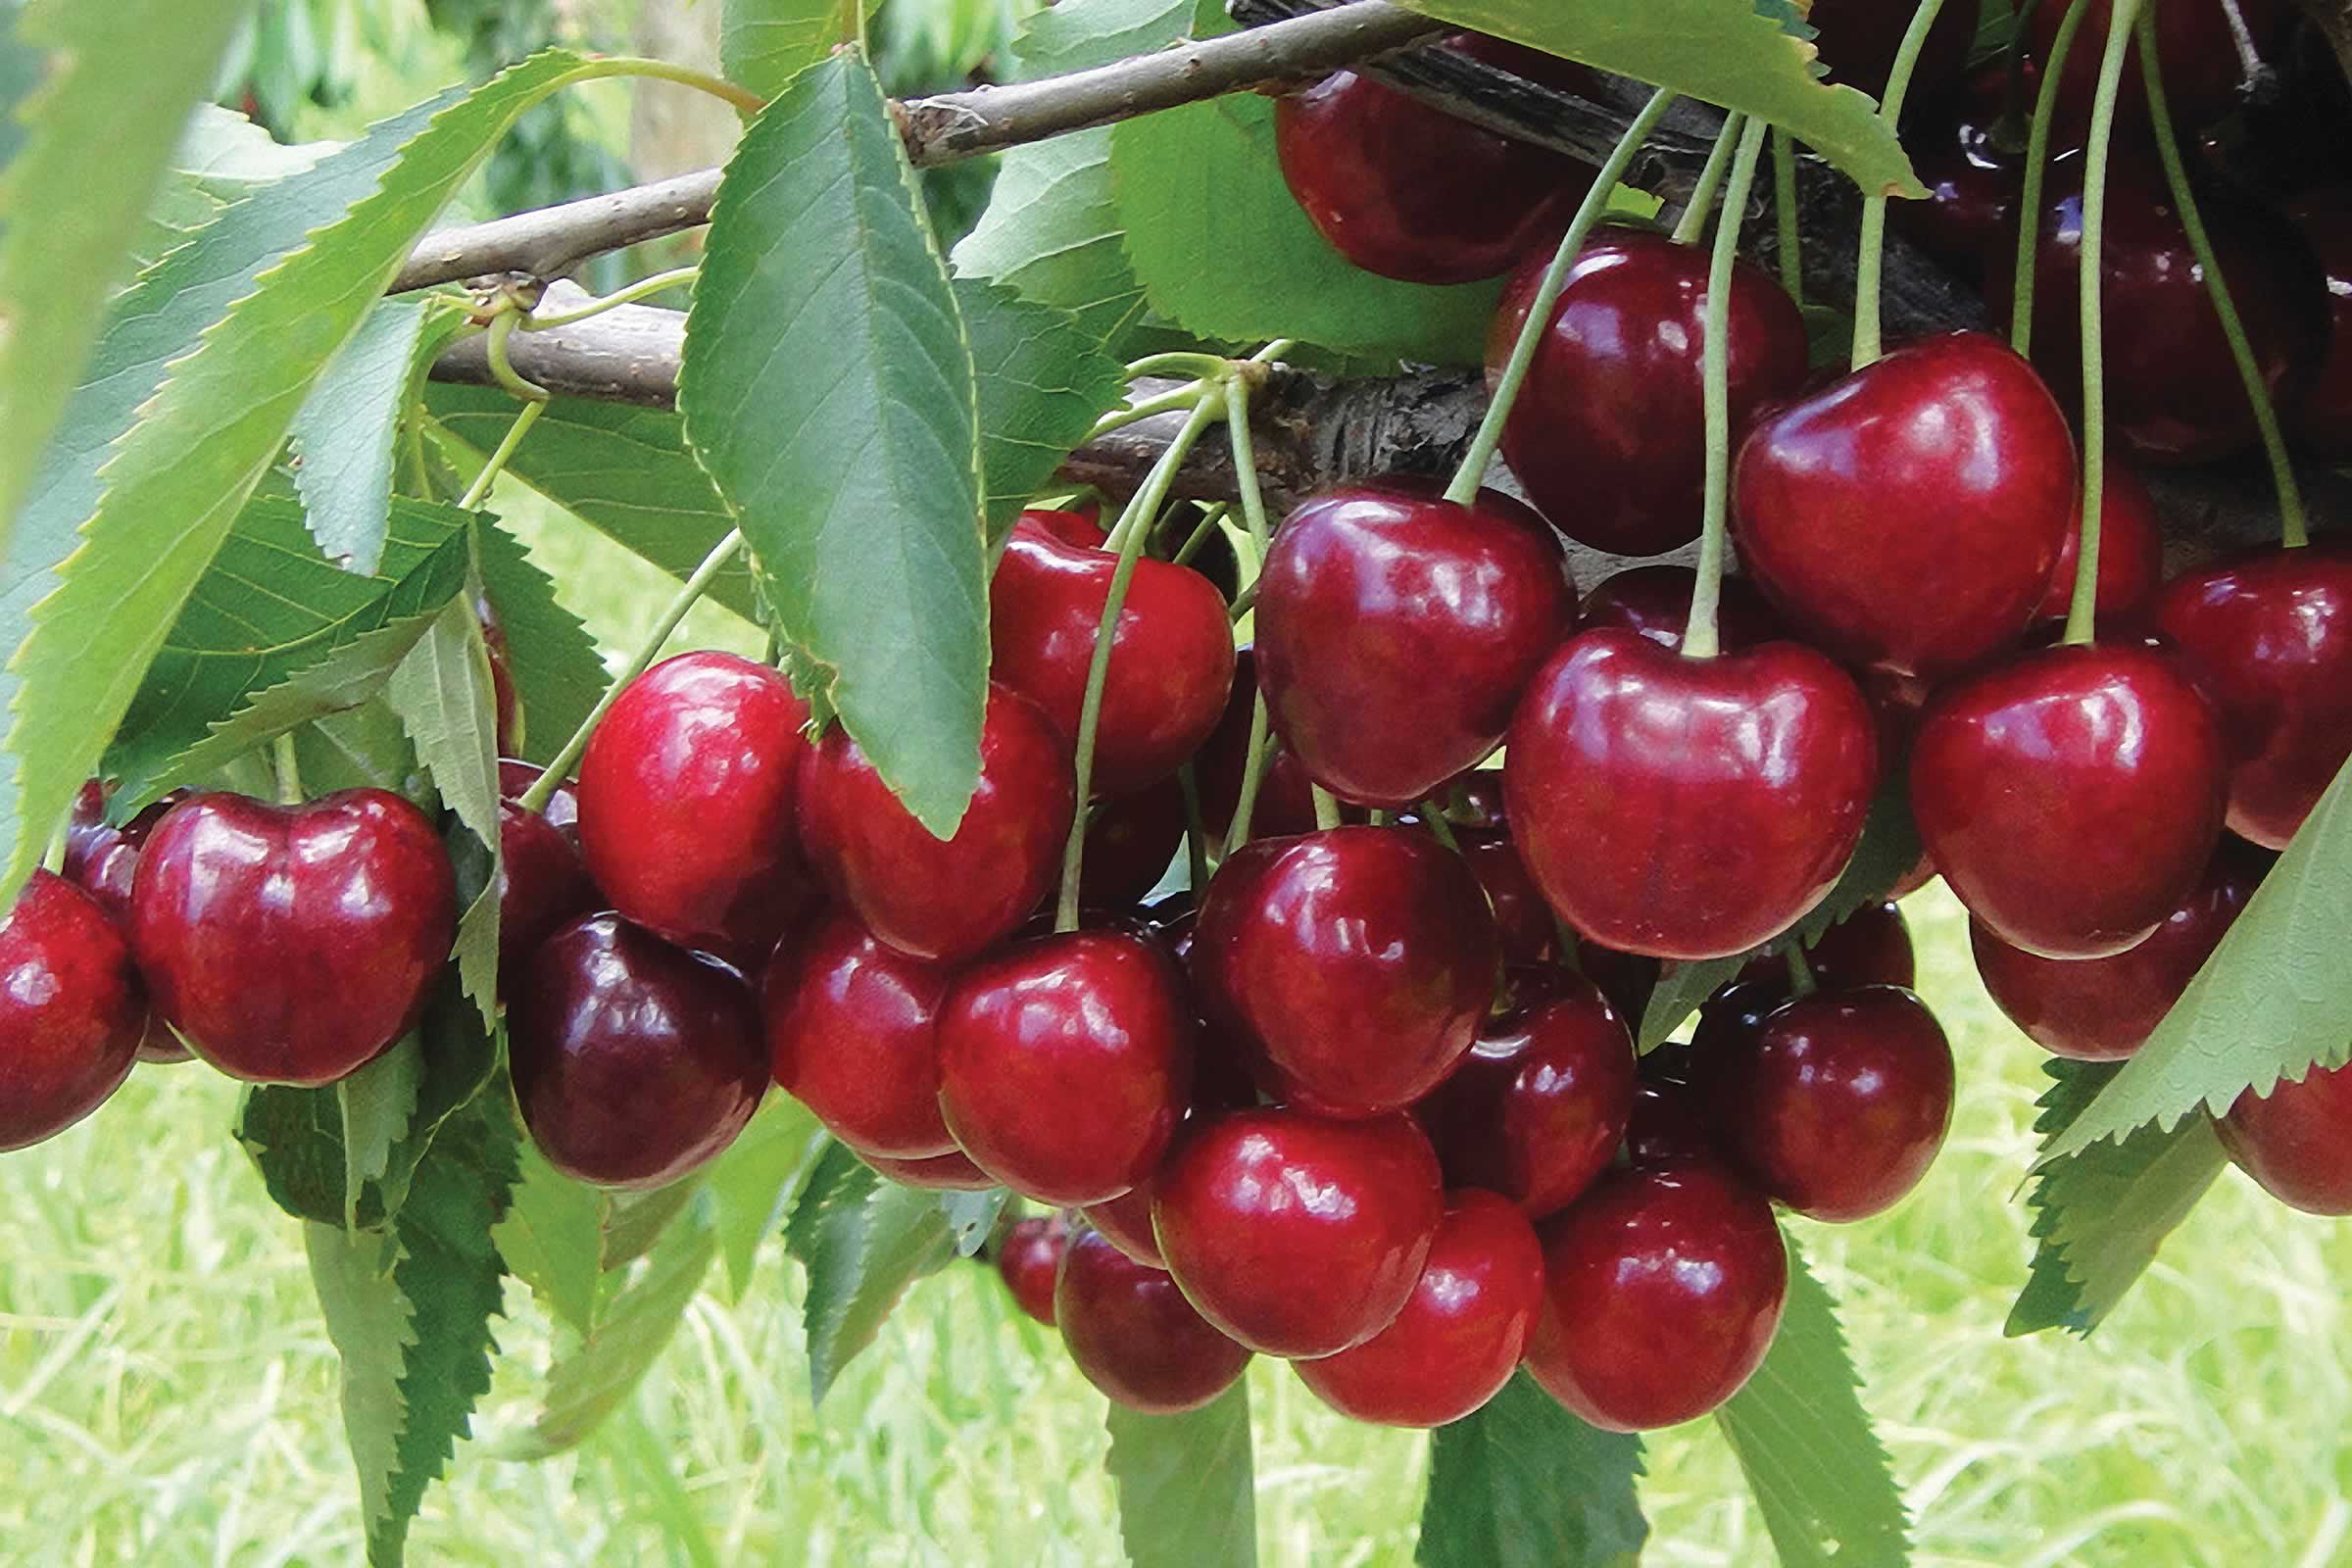 New cherries